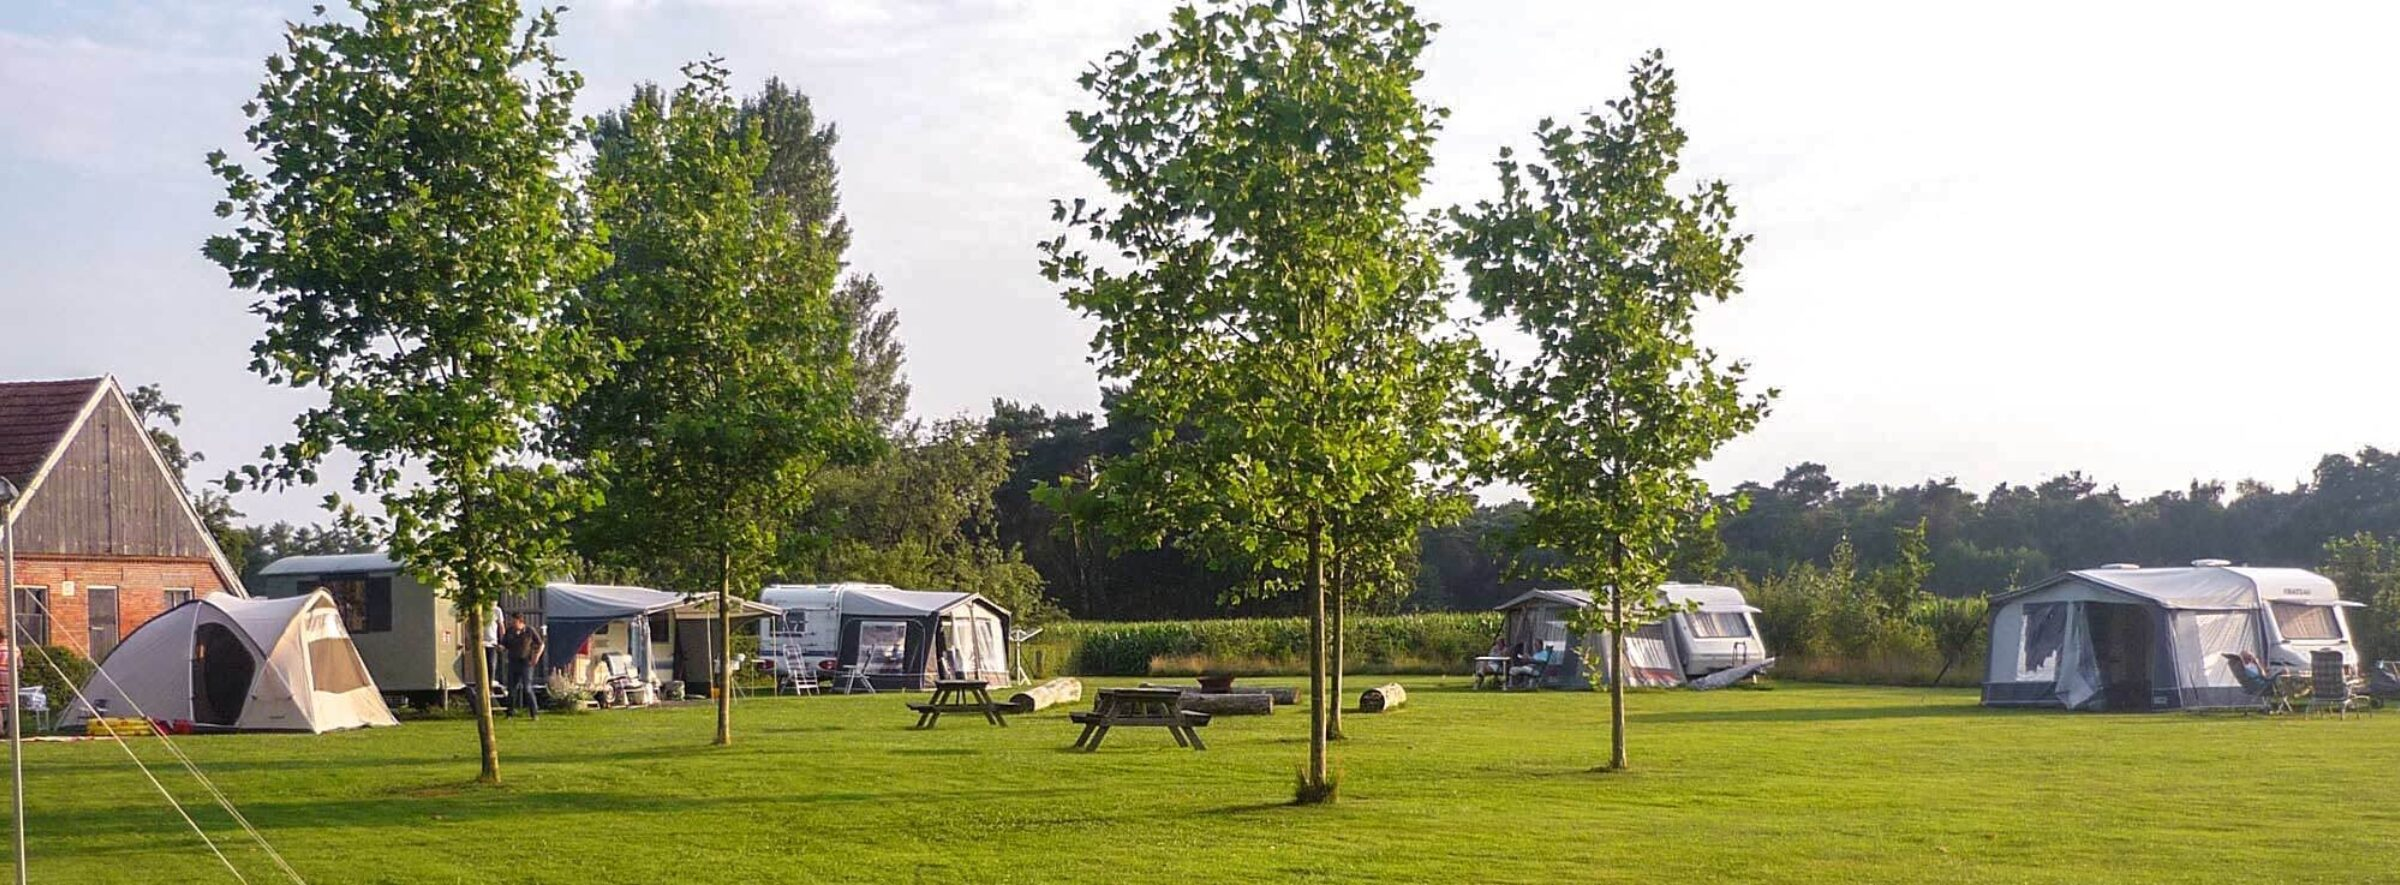 Camping enschede